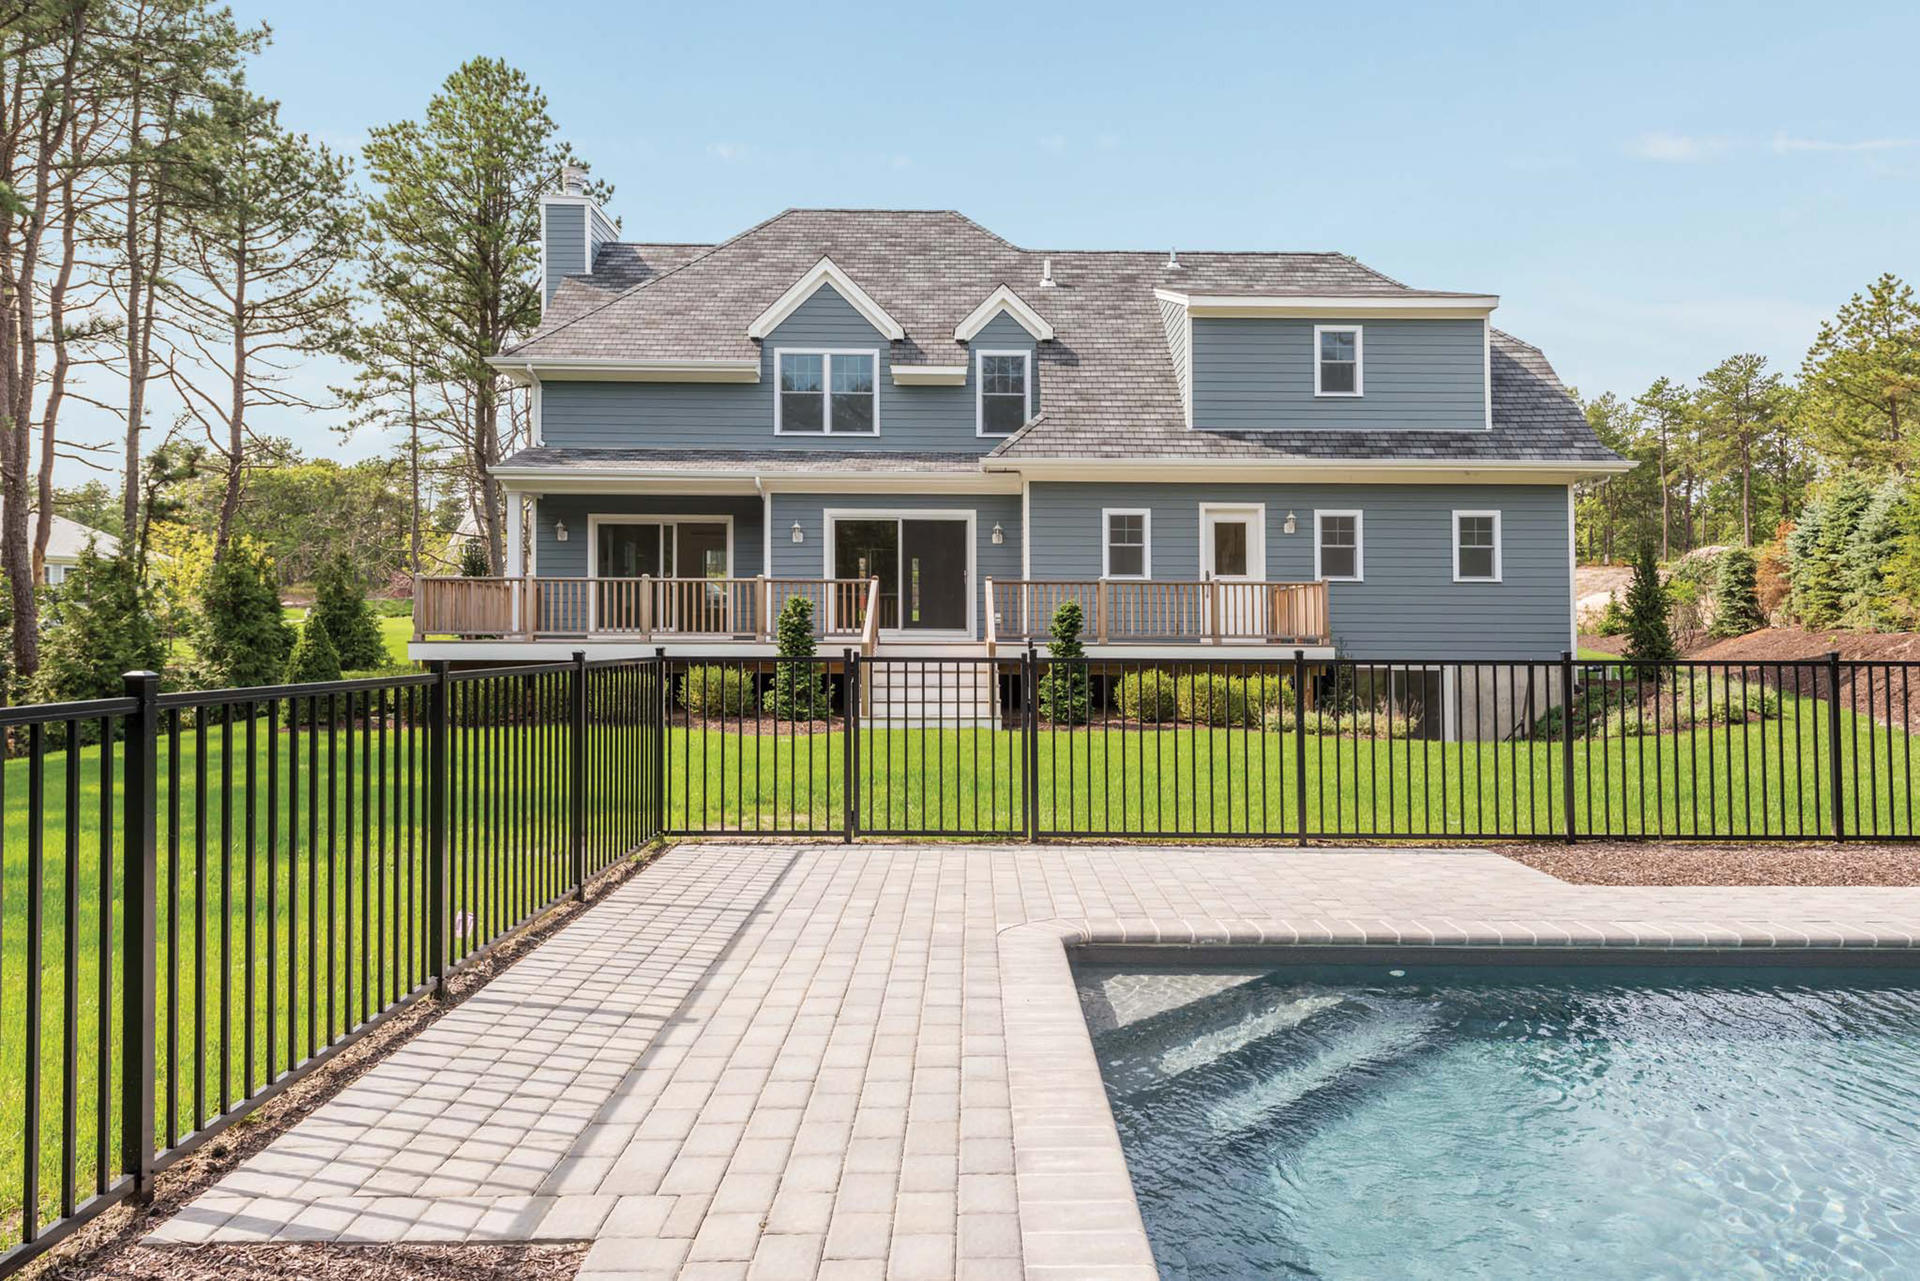 Single Family Home for Sale at Stunning New Construction W/Pool & Finished Basement Westhampton Beach, New York